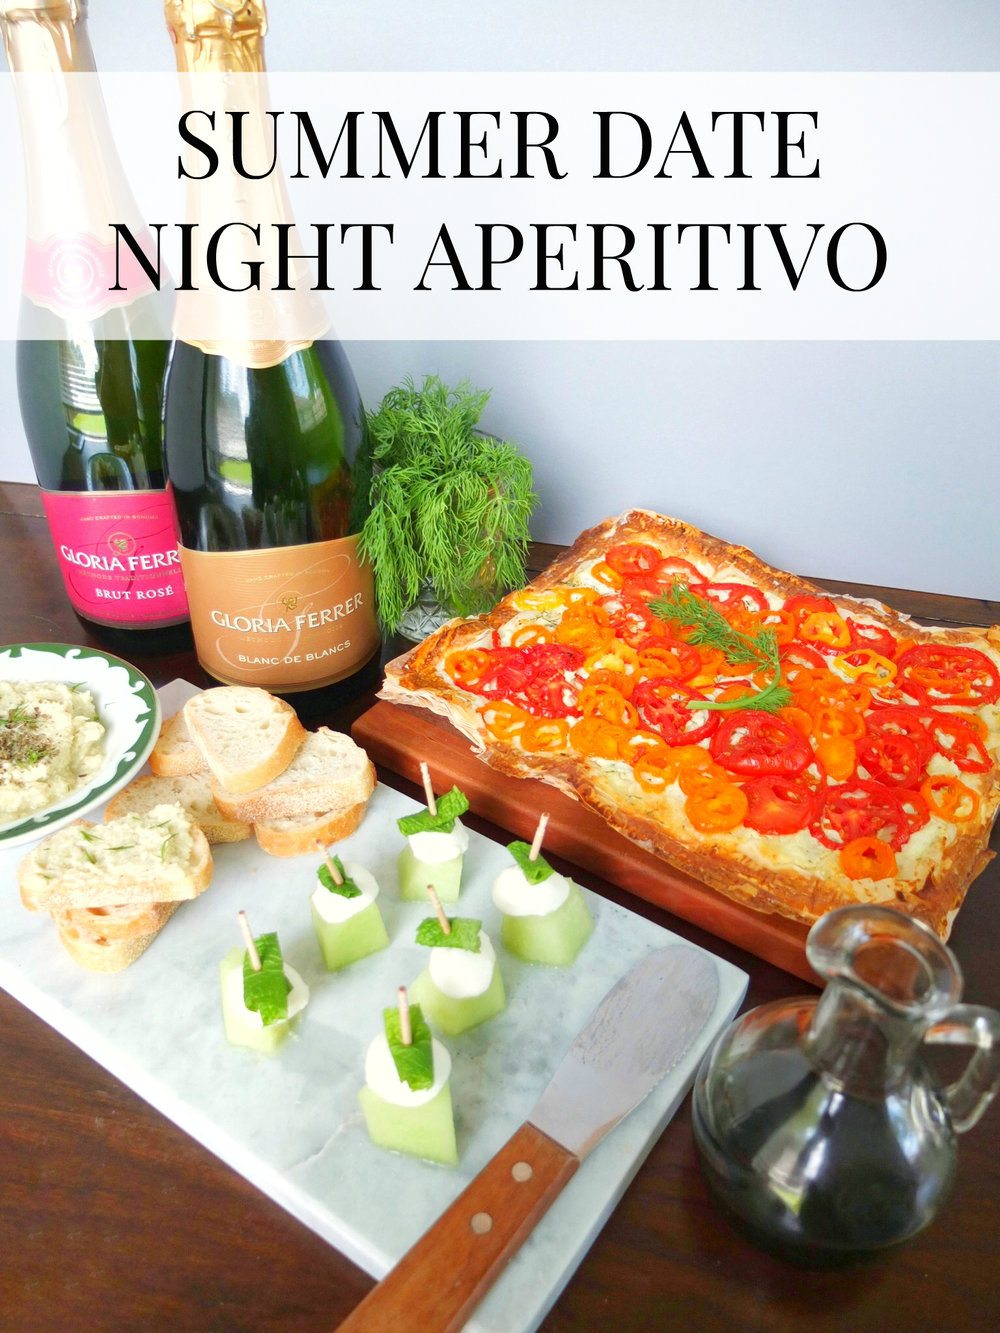 How to throw a summer date night aperitivo with three simple aperitifs and quick small bite recipes including Green Melon Caprese, Lemon & Artichoke Tapenade, and a Heirloom Tomato Tart for a delicious European Happy Hour. This meal is paired to Gloria Ferrer sparkling wines. #ad #GloriaFerrer #CLVR // www.elletalk.com